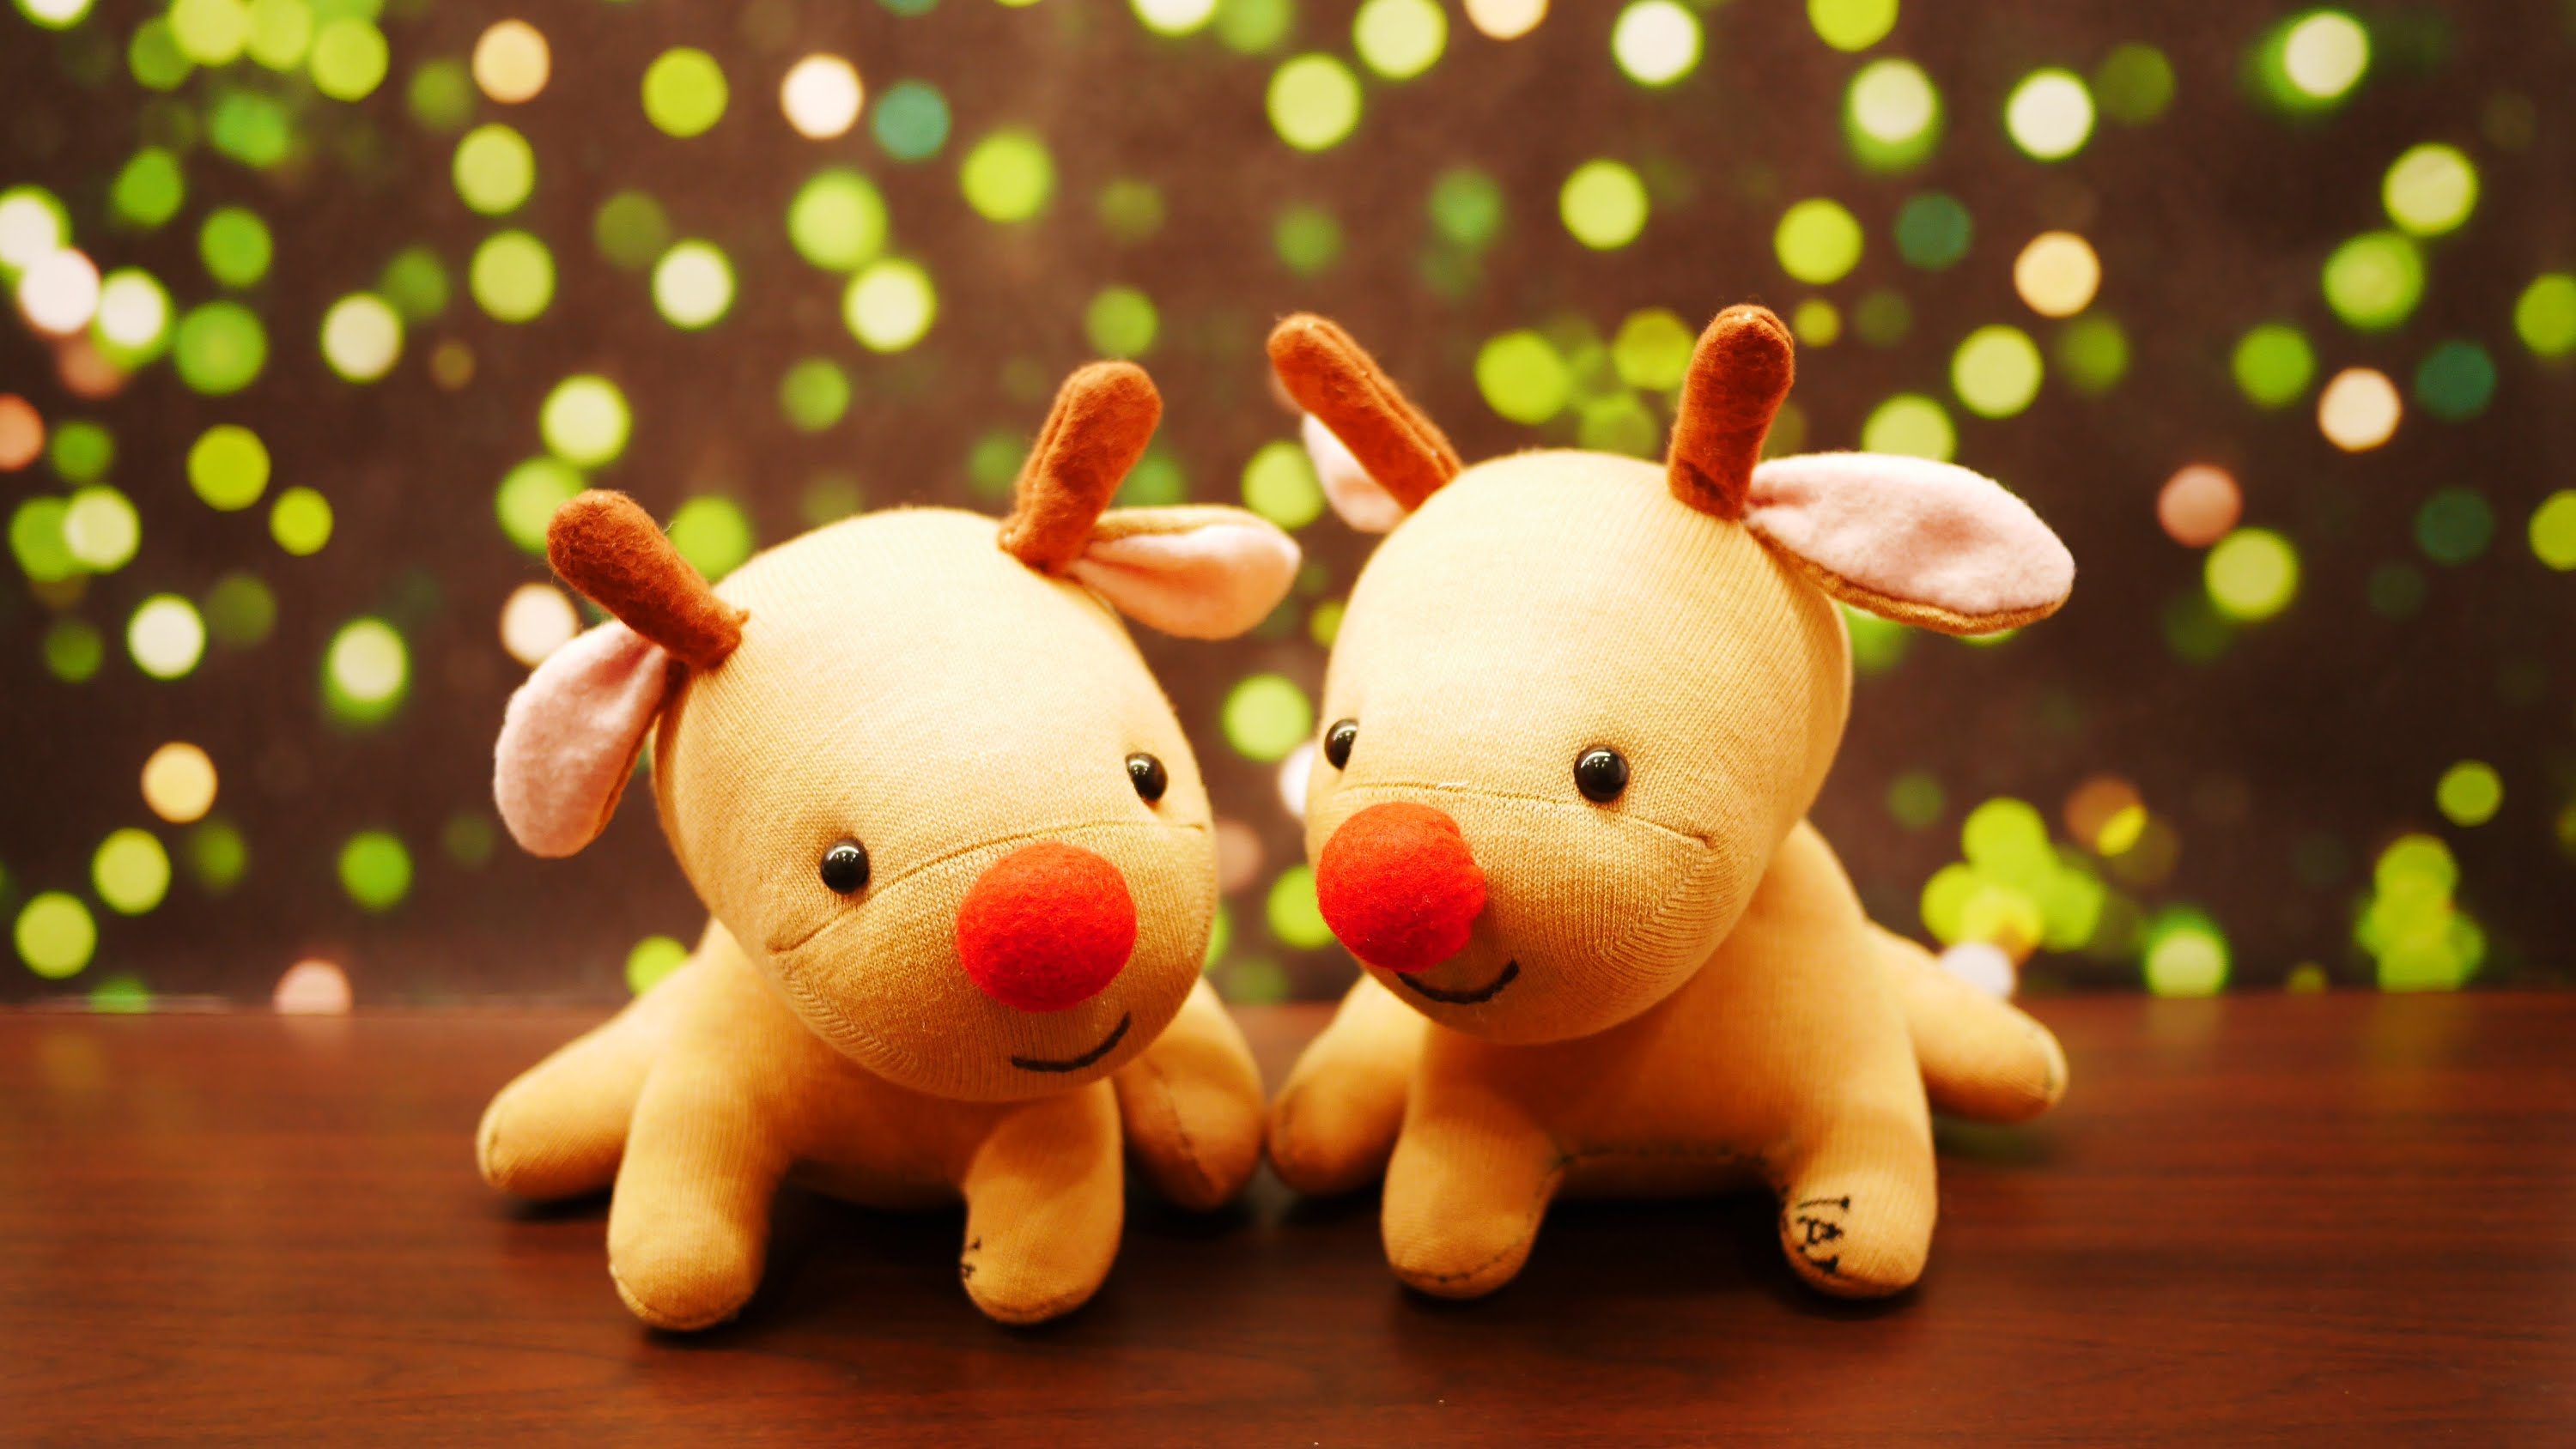 Cute stuffed reindeer photo